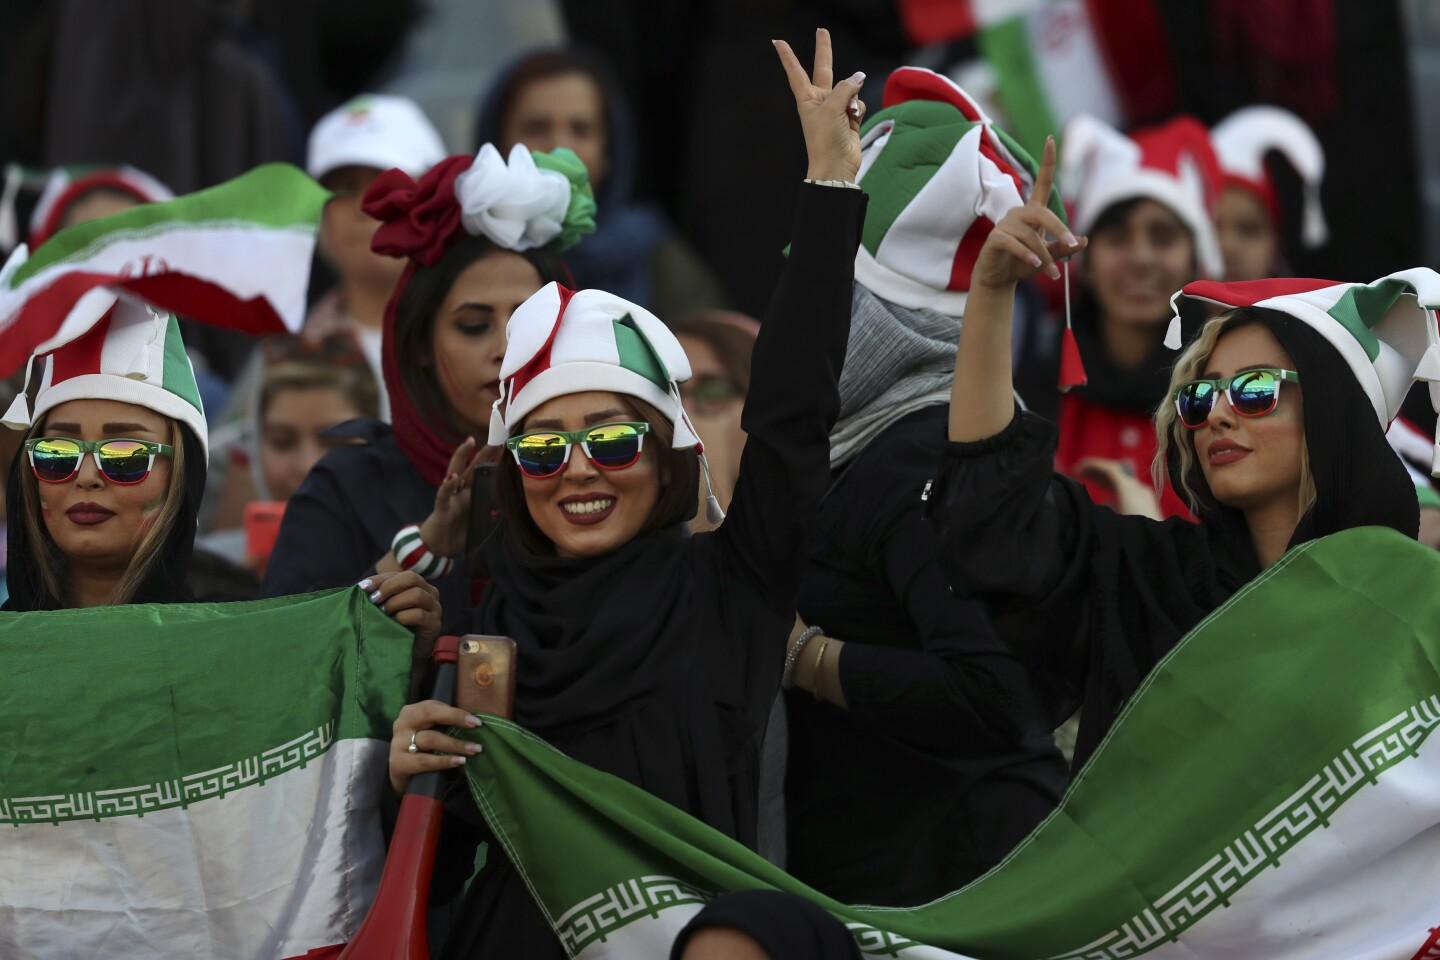 Women attend soccer match in Iran for the first time in decades